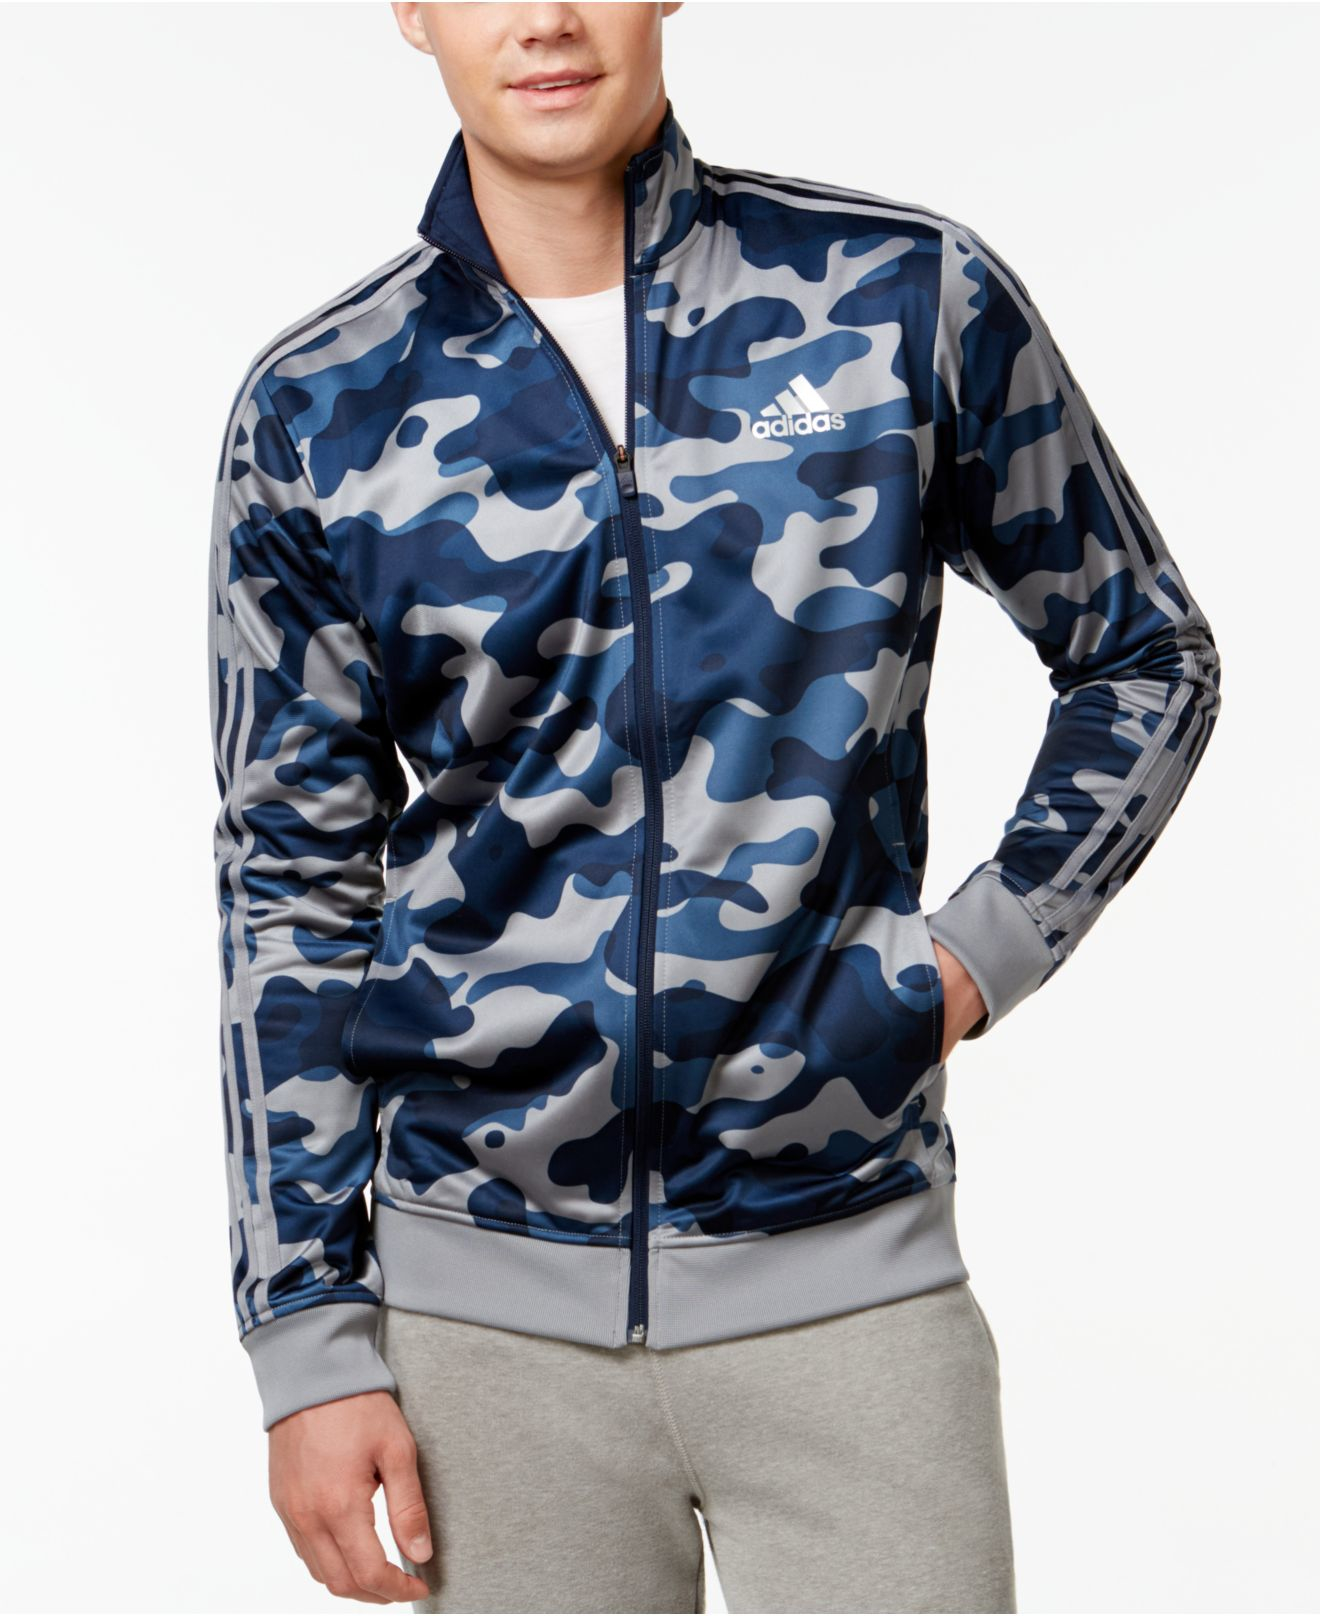 adidas jacket camo jeremy scott ruffle camo jacket adidas. Black Bedroom Furniture Sets. Home Design Ideas